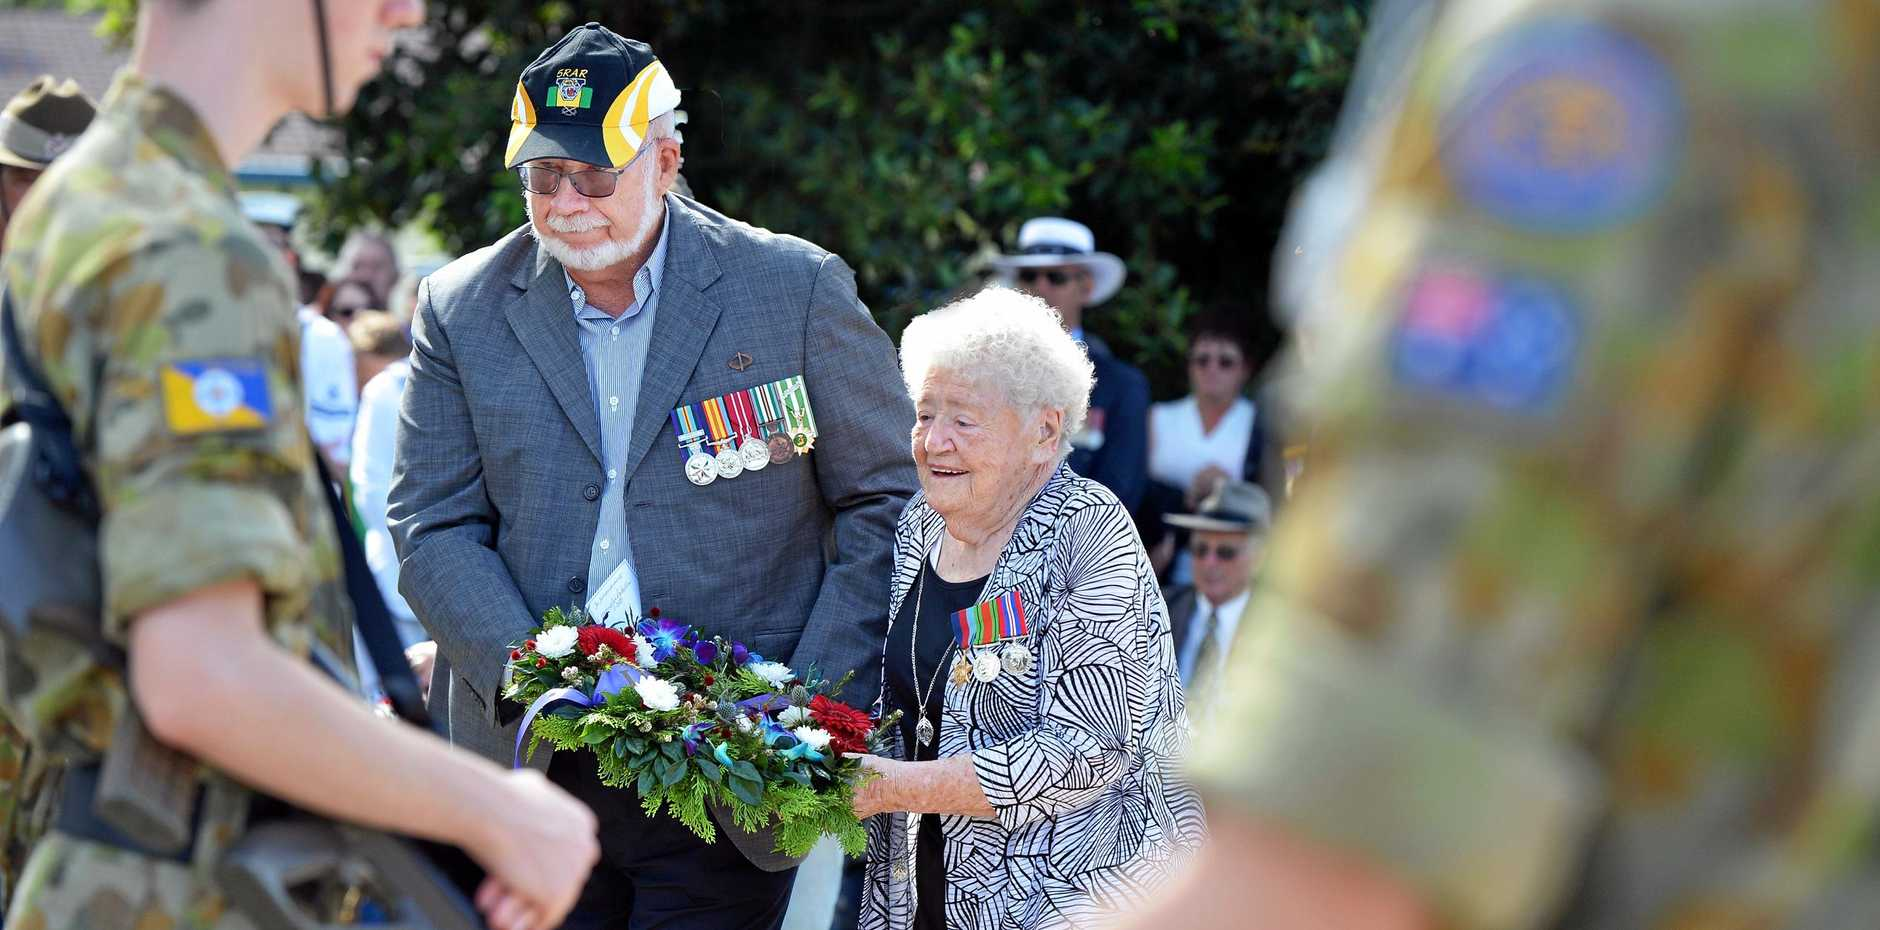 CLOSING A CHAPTER: Caloundra RSL Sub-branch member Gary Phillips and veteran Elizabeth Philip laying a wreath.